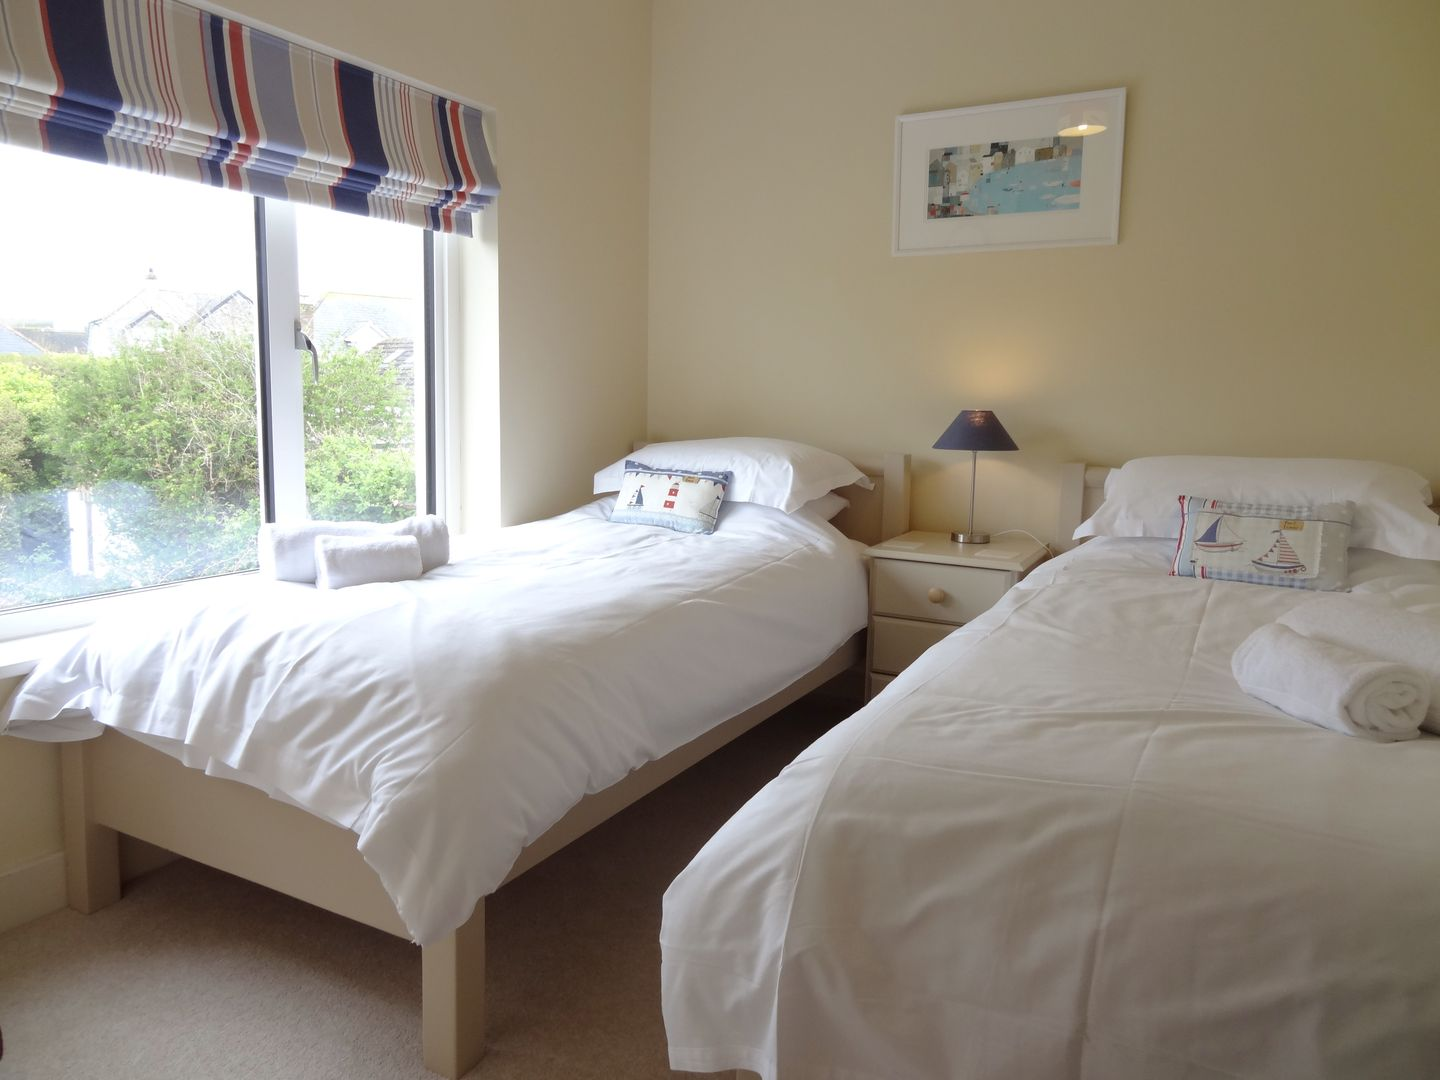 sofa beds londonderry 2 seater bed singapore castle view port isaac cornwall inc scilly self